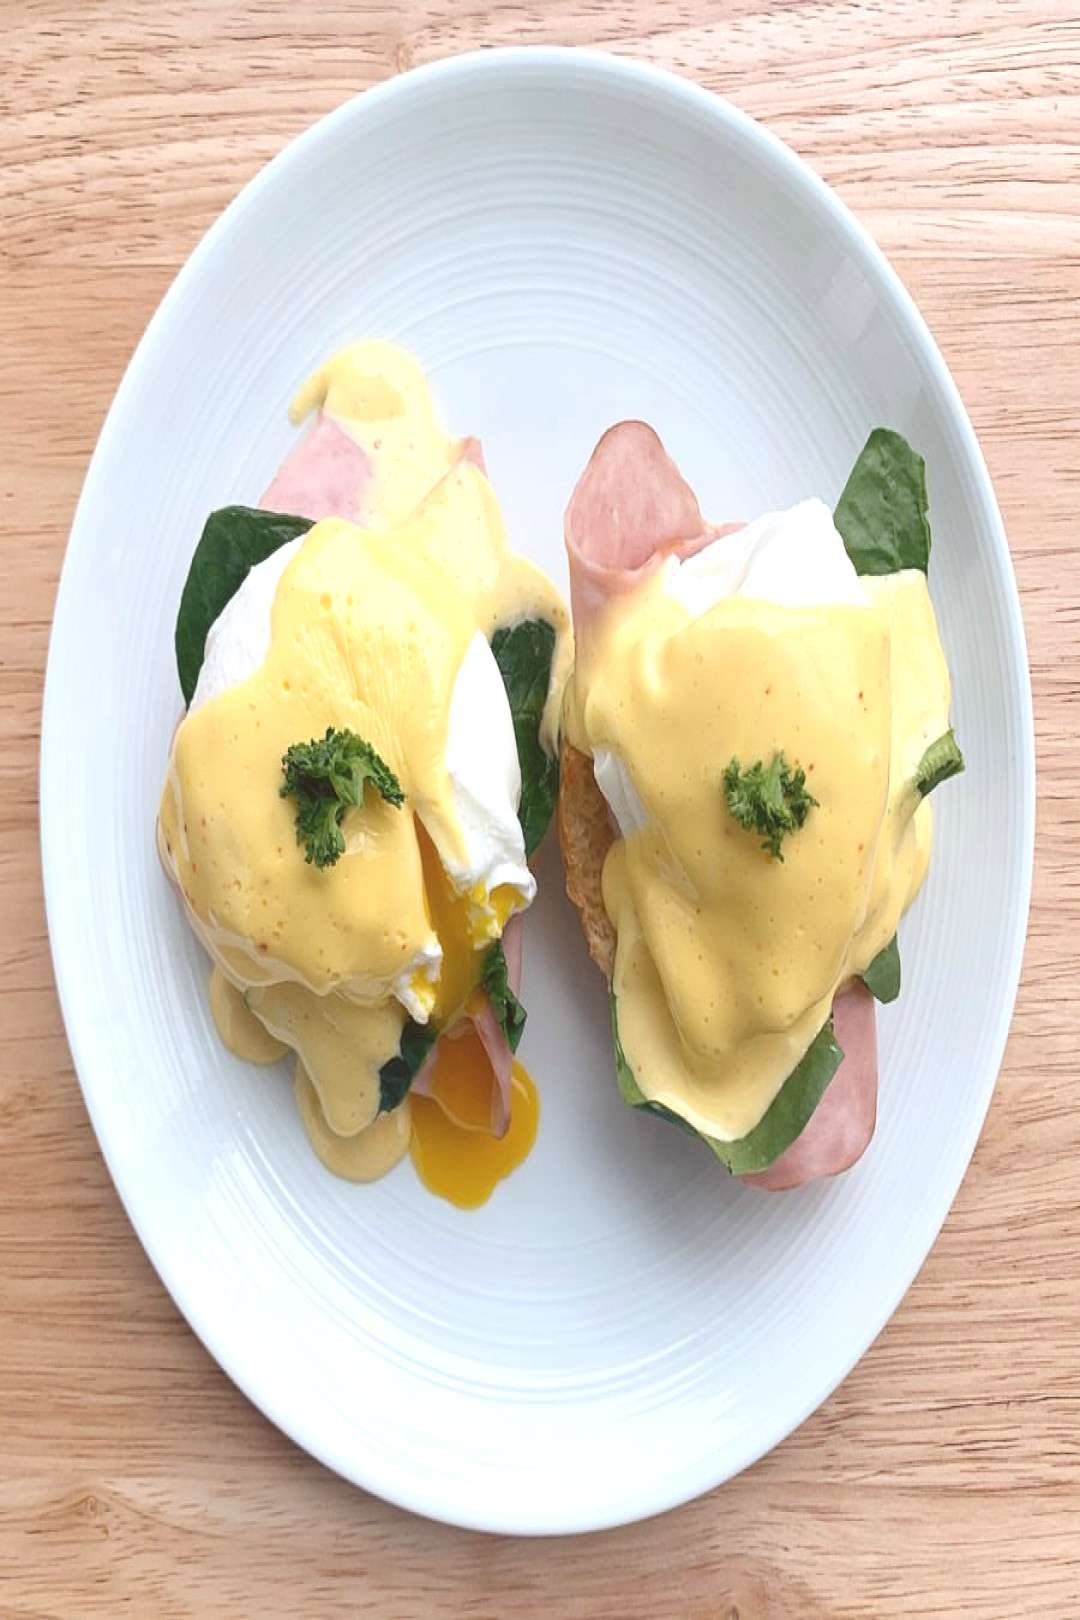 Homemade Eggs Benedict for Sunday brunch ️. Eggs Benedict has a